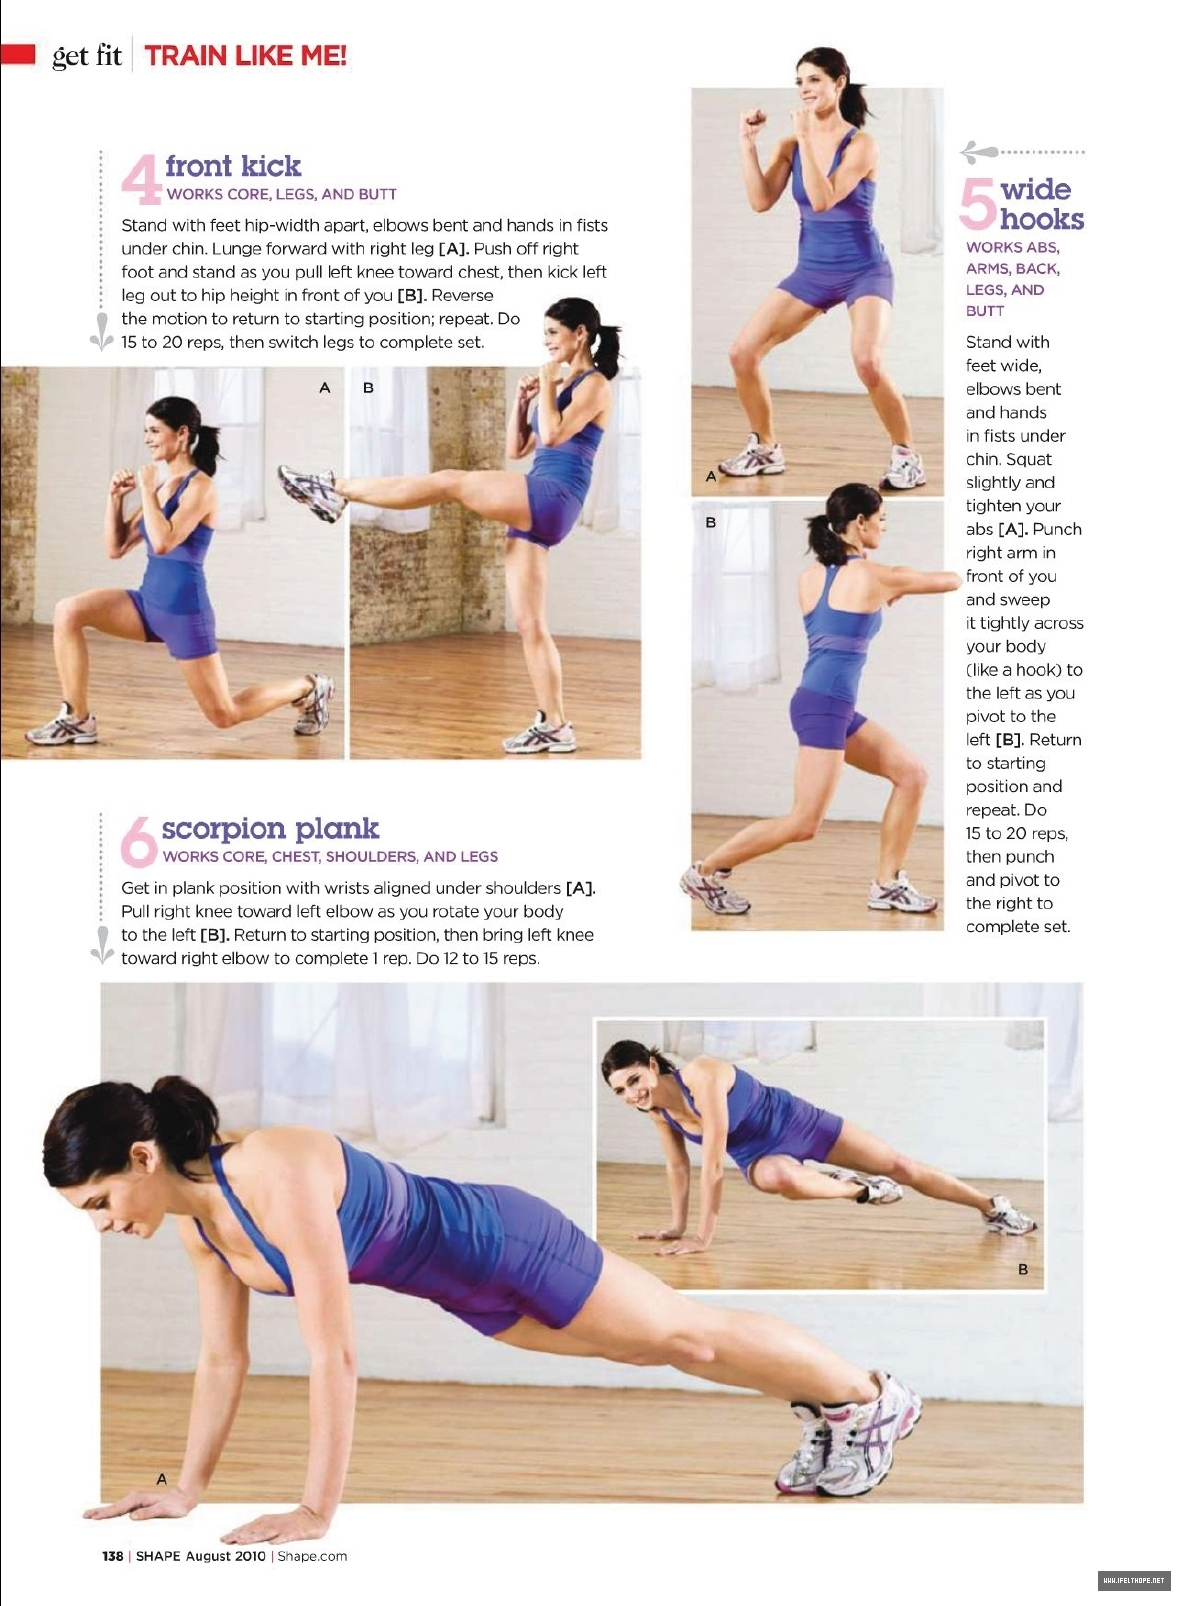 Ashley Greene in August 2010 issue of Shape